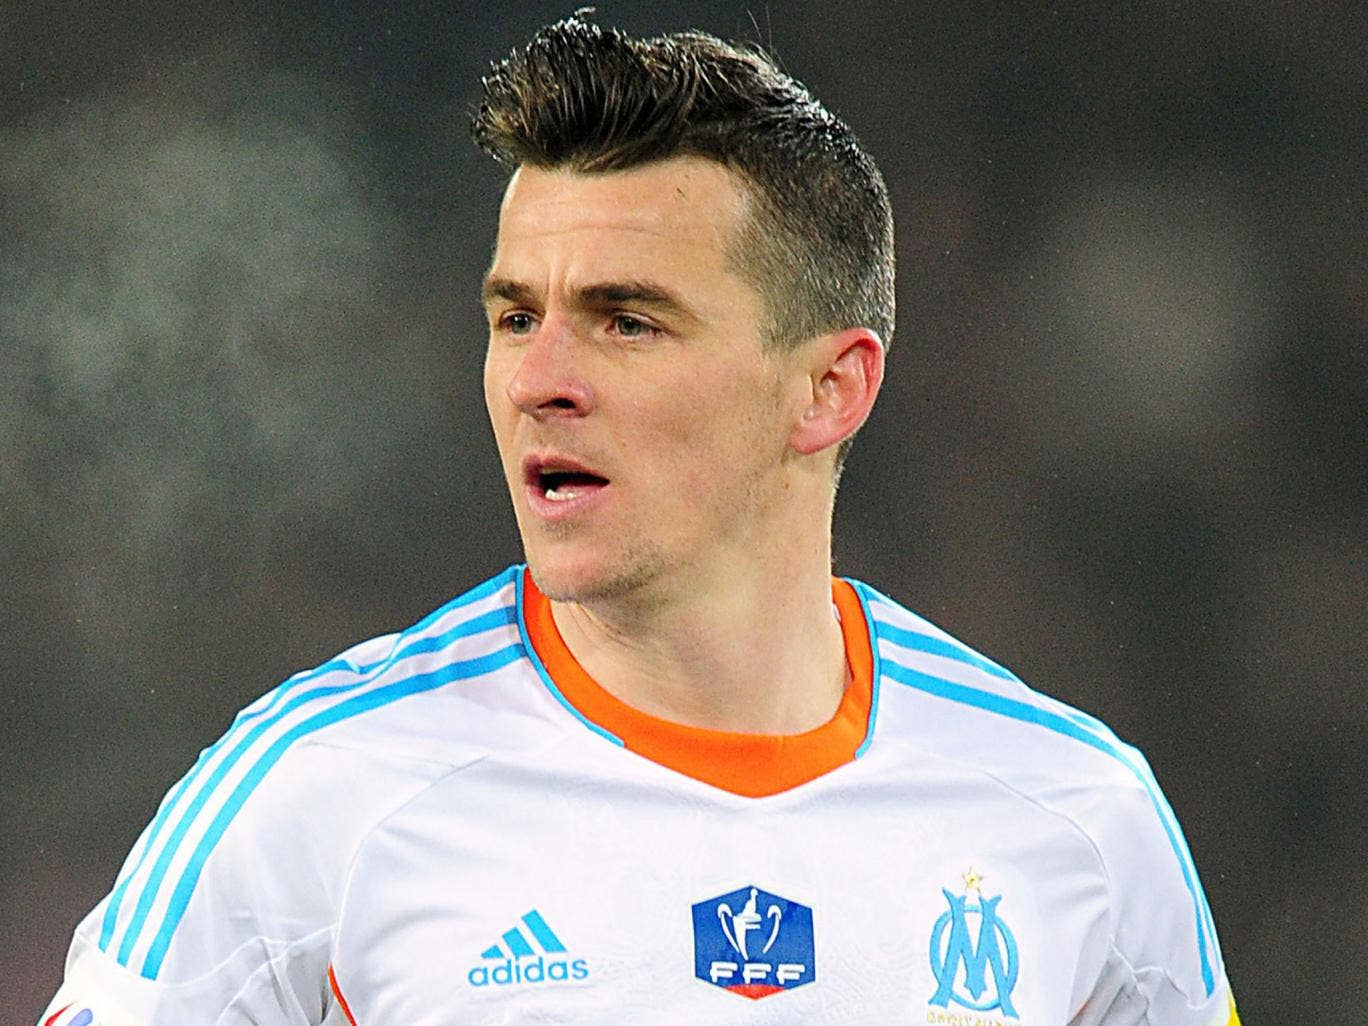 Barton has been summoned after he called Thiago Silva an 'overweight ladyboy' on Twitter